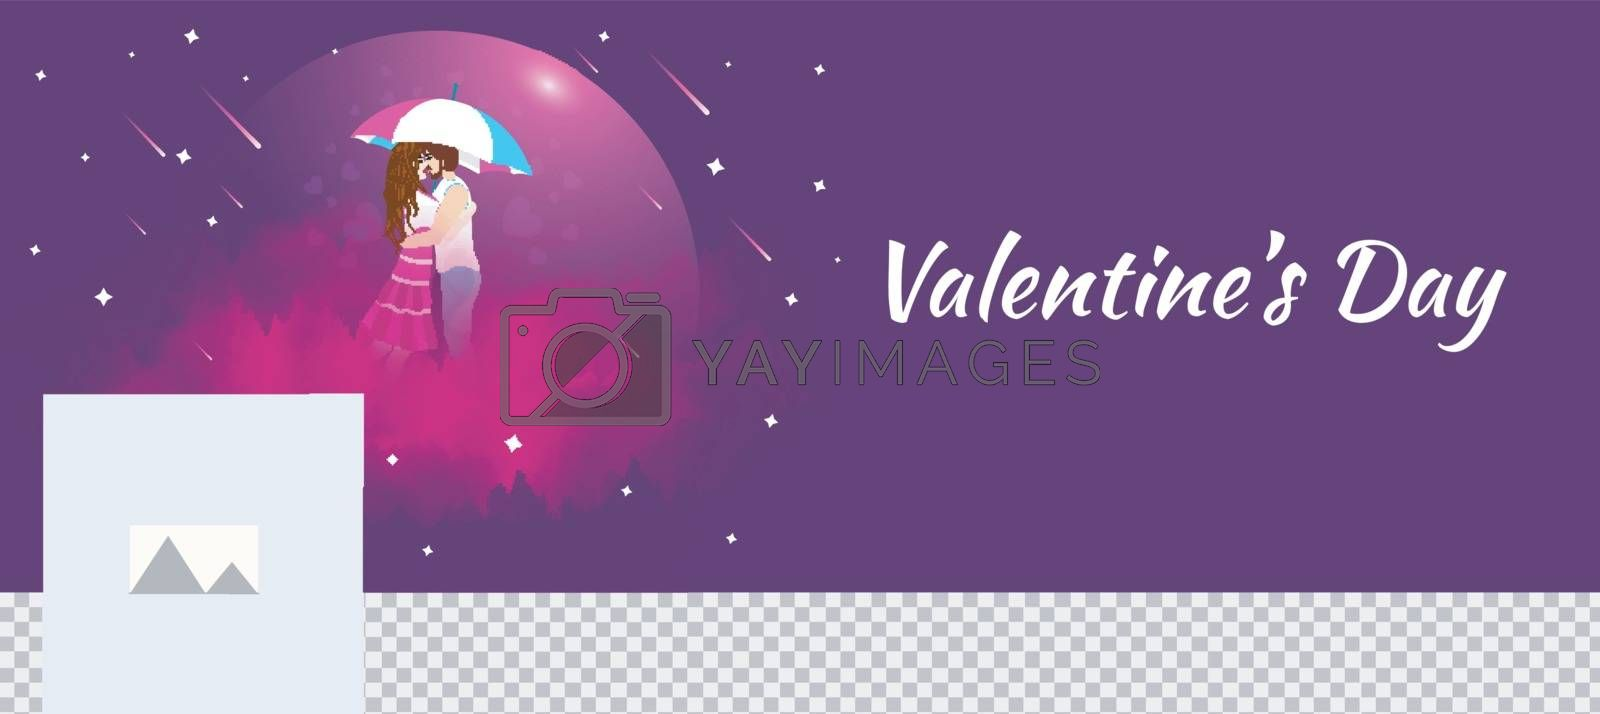 Young couple in romantic pose on purple background with stylish lettering of Valentine's Day for Social media header or banner design.